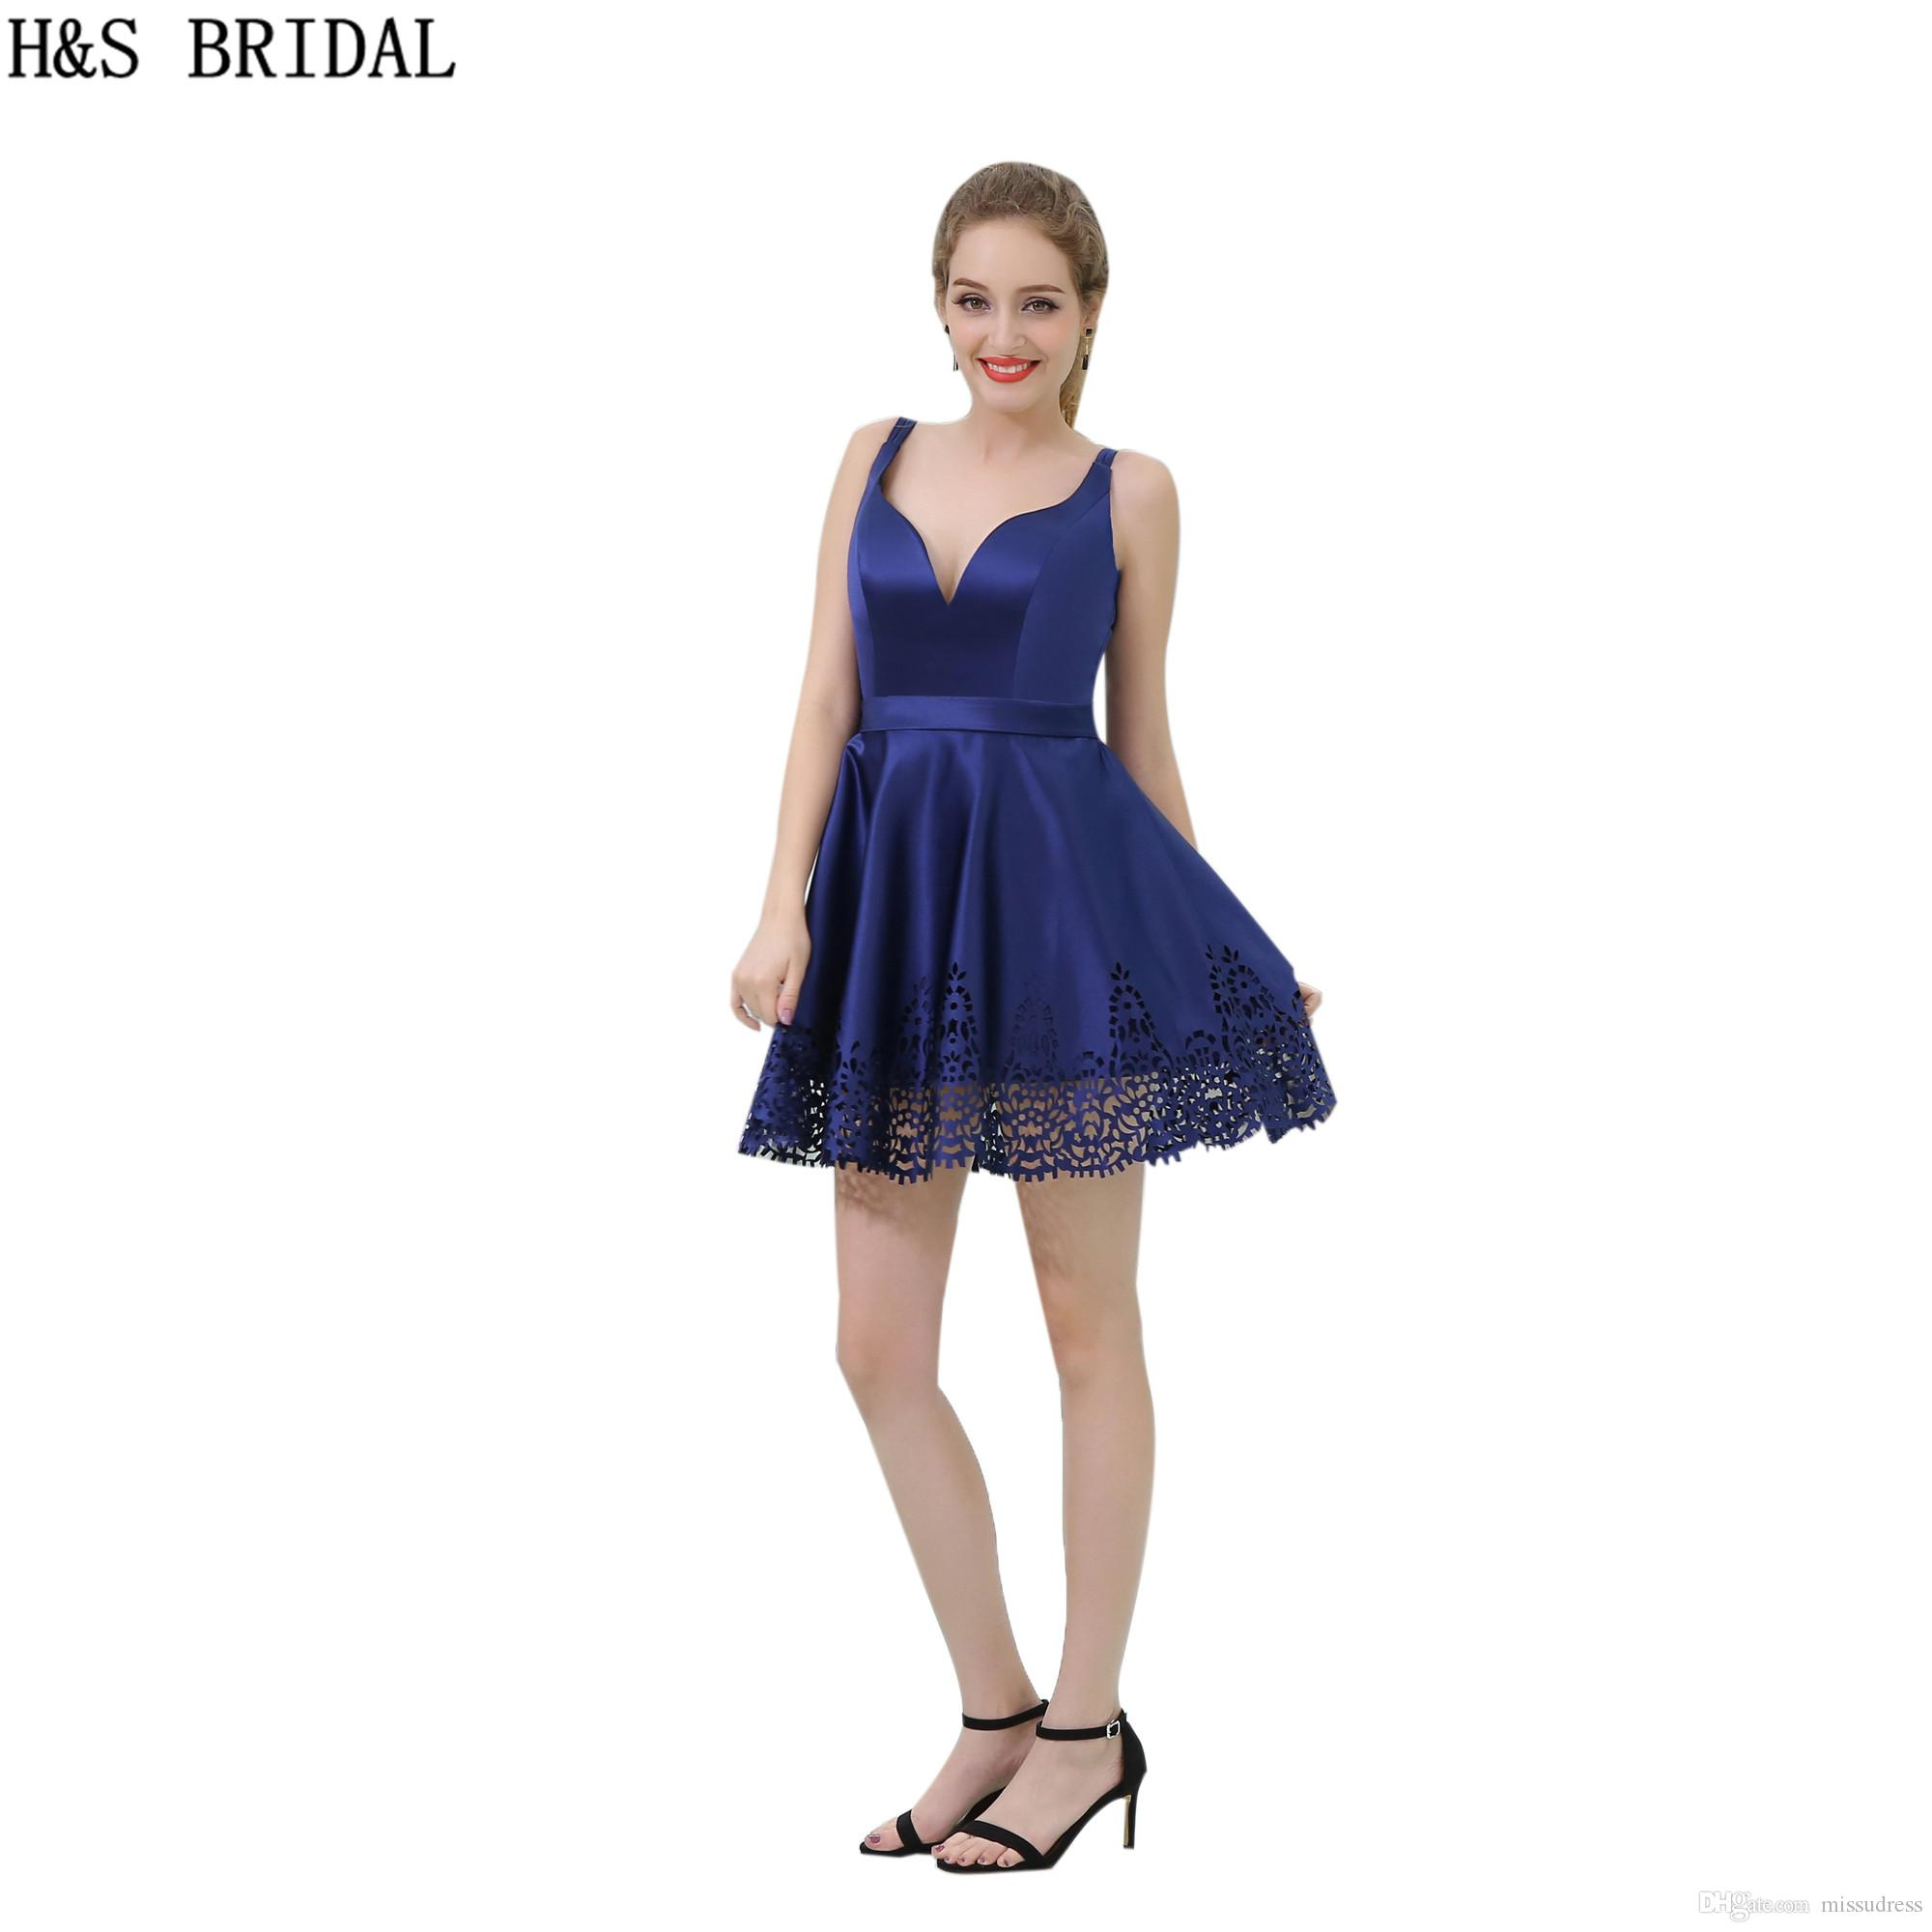 Royal blue hollow short cocktail dresses sweetheart mini homecoming royal blue hollow short cocktail dresses sweetheart mini homecoming dresses bridesmaid short dresses cheap real b049 one shoulder cocktail dress pink ombrellifo Image collections